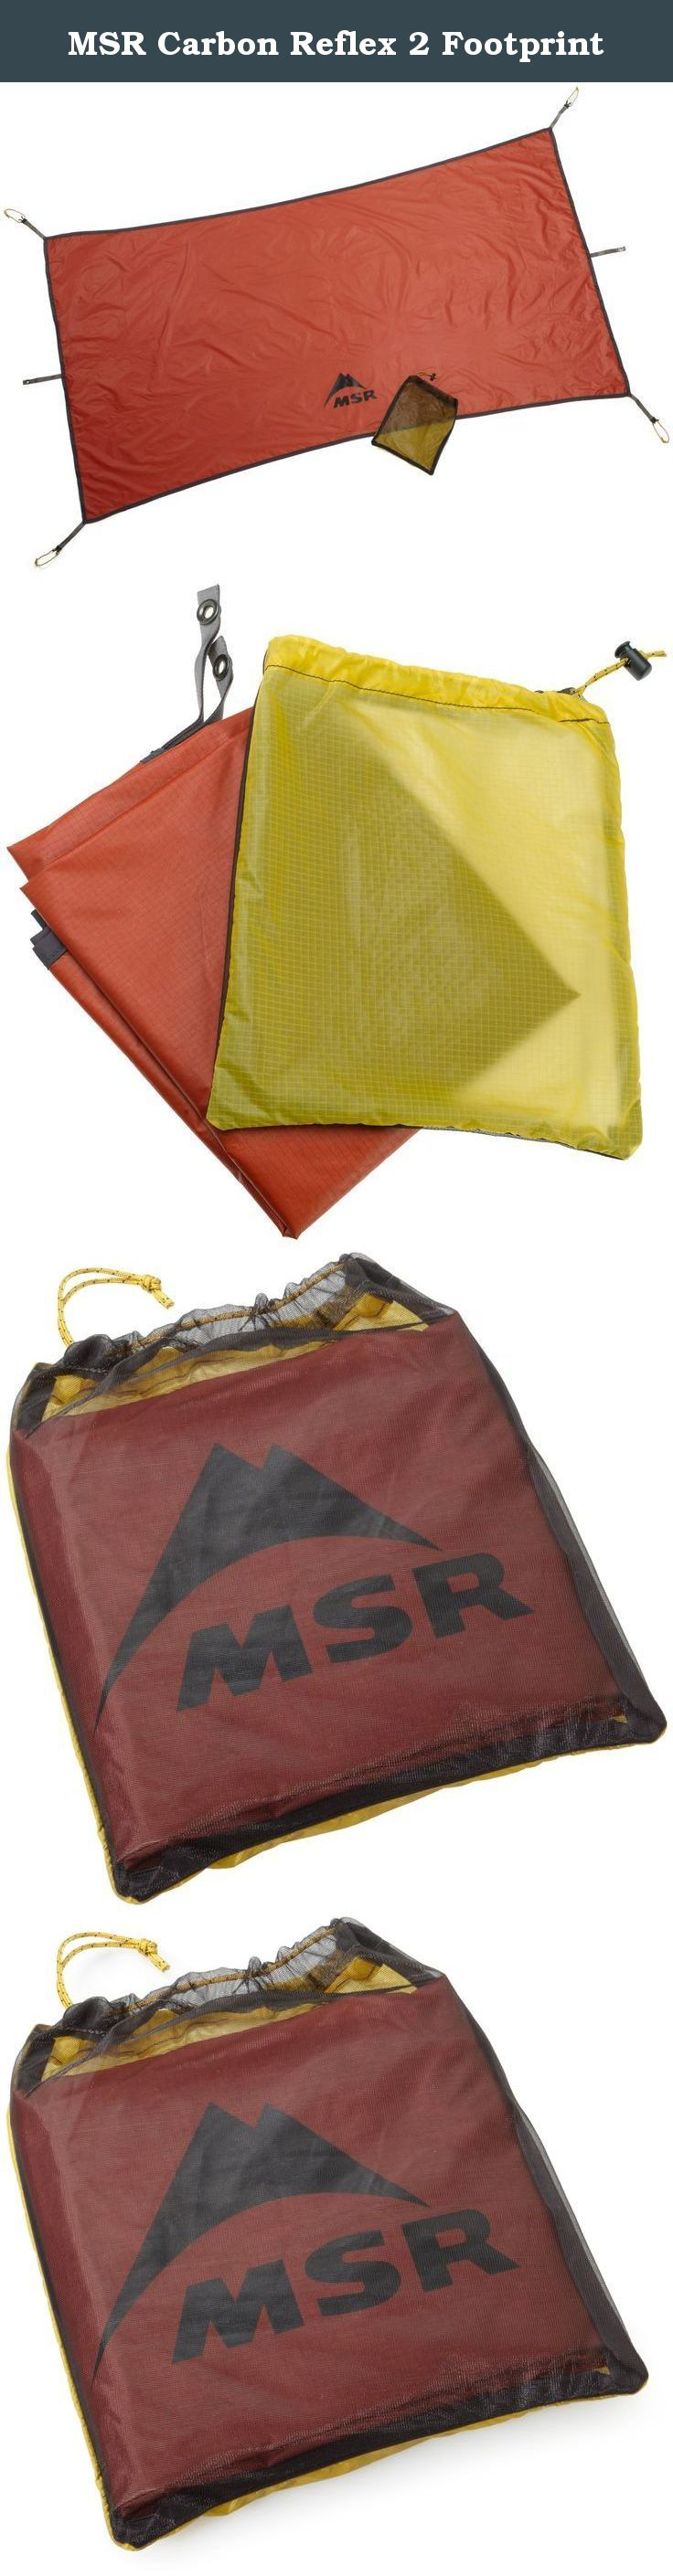 MSR Carbon Reflex 2 Footprint. MSR footprints protect tent floors from sharp objects and ground & MSR Carbon Reflex 2 Footprint. MSR footprints protect tent floors ...